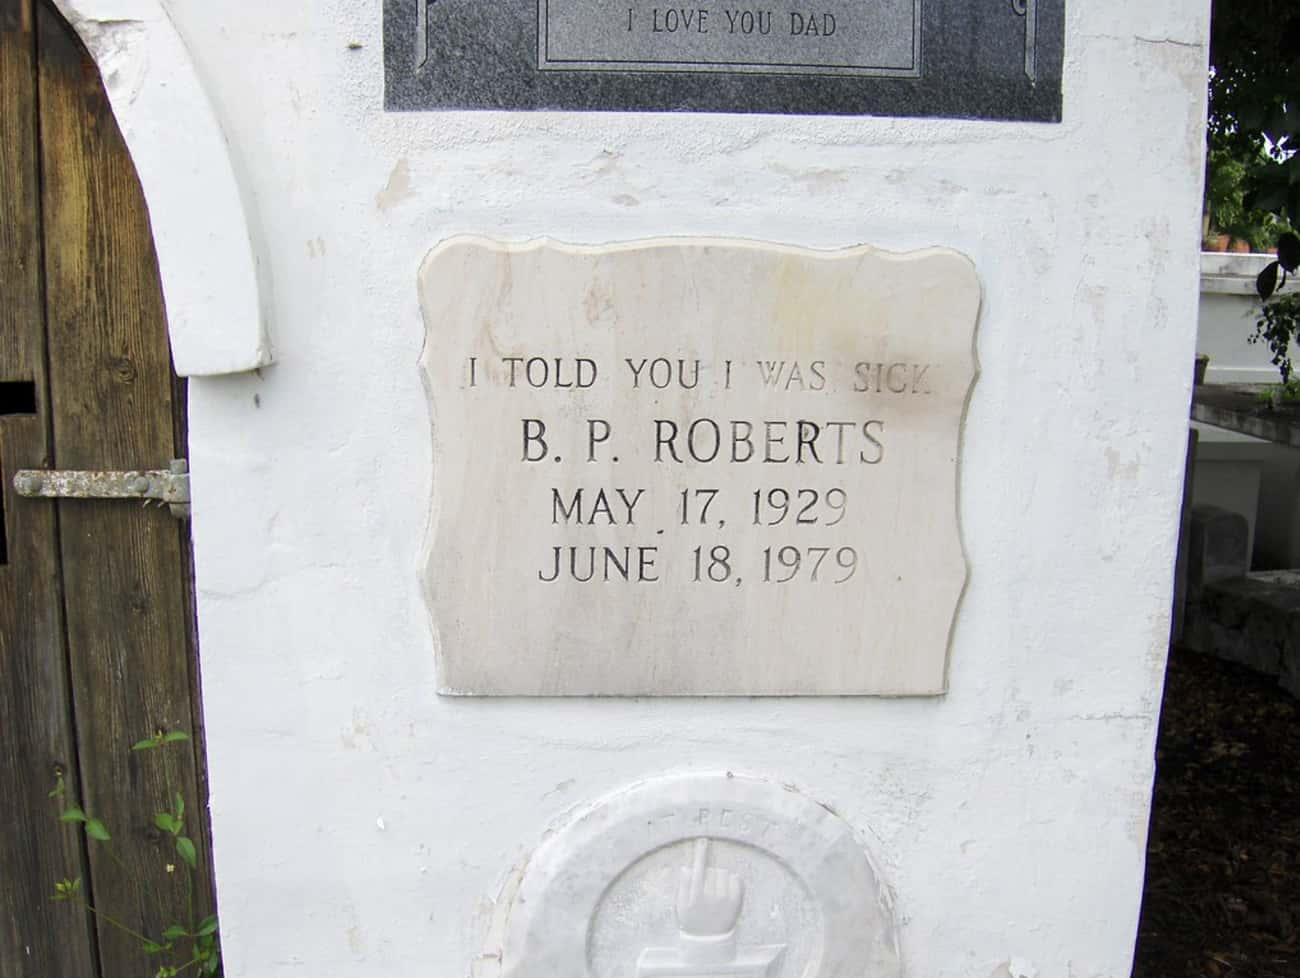 No One Ever Believes Me! is listed (or ranked) 2 on the list 13 Tombstones of People Who Died Laughing